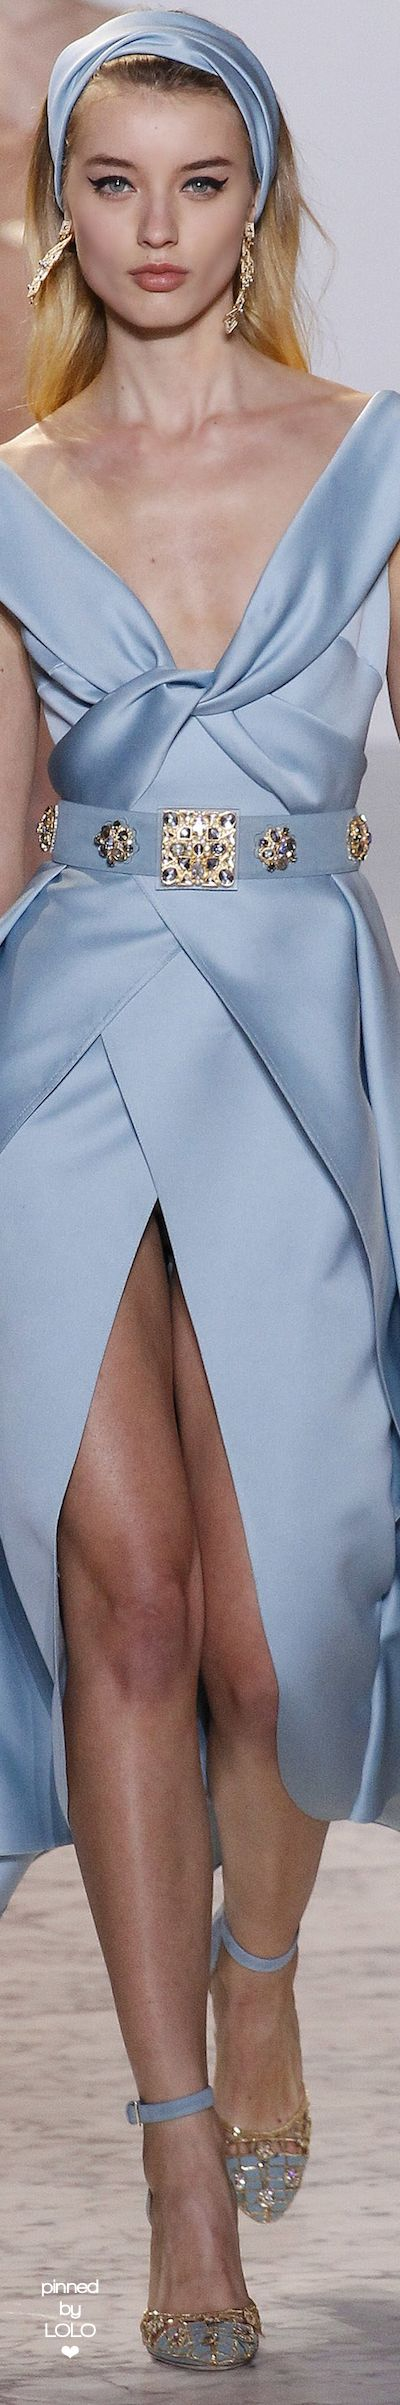 Elie Saab Spring 2017 Couture. Great summer look, strong baby blue with Jackie O wide headband. accessorize with lots of high and prominent cheekbones, collarbones, hipbones ...